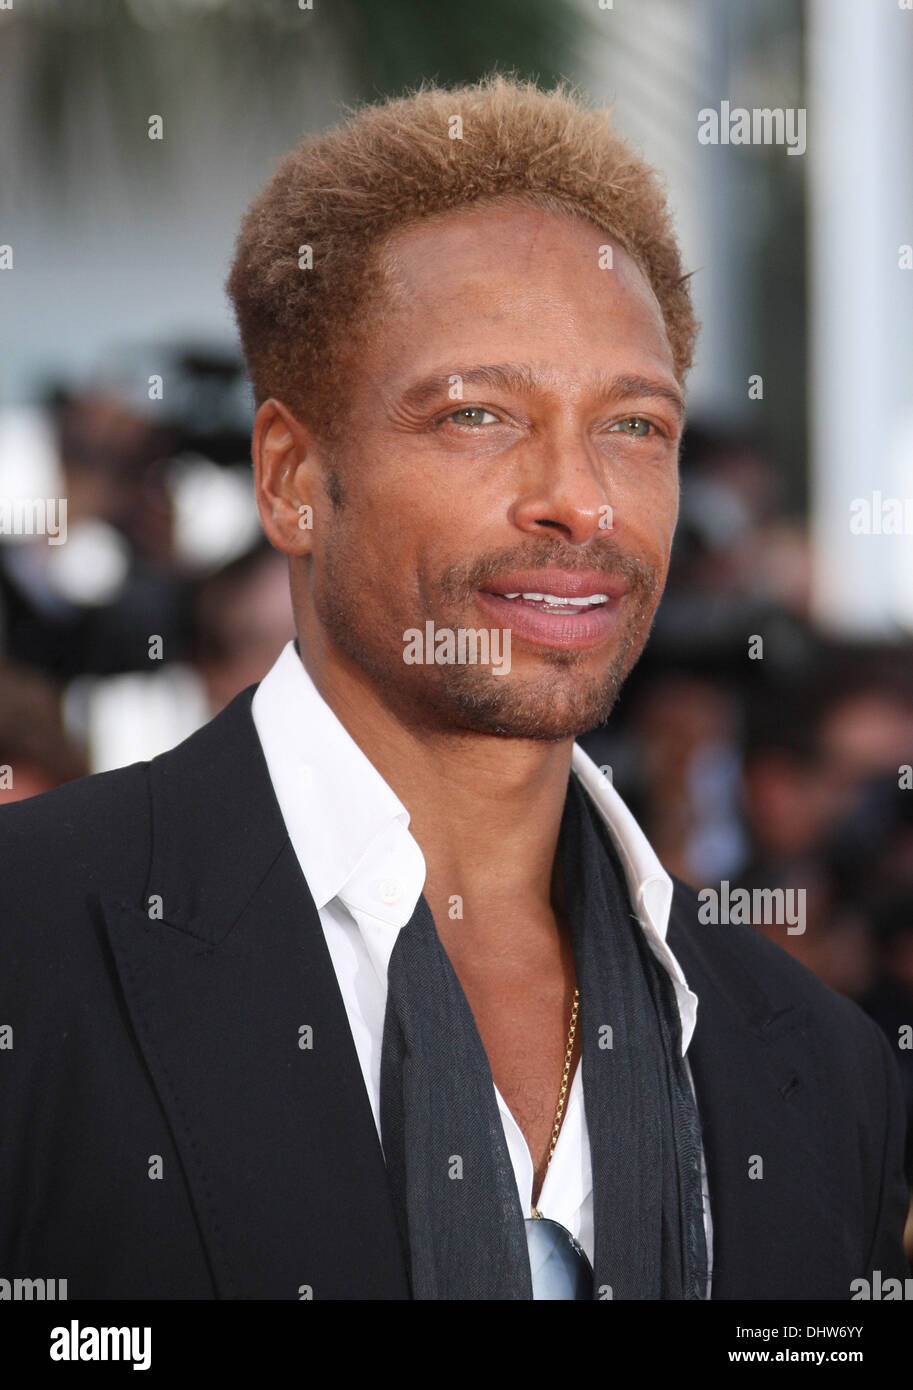 Gary Dourdan 'Mud' premiere during the 65th annual Cannes Film Festival Cannes, France - 26.05.12 Stock Photo